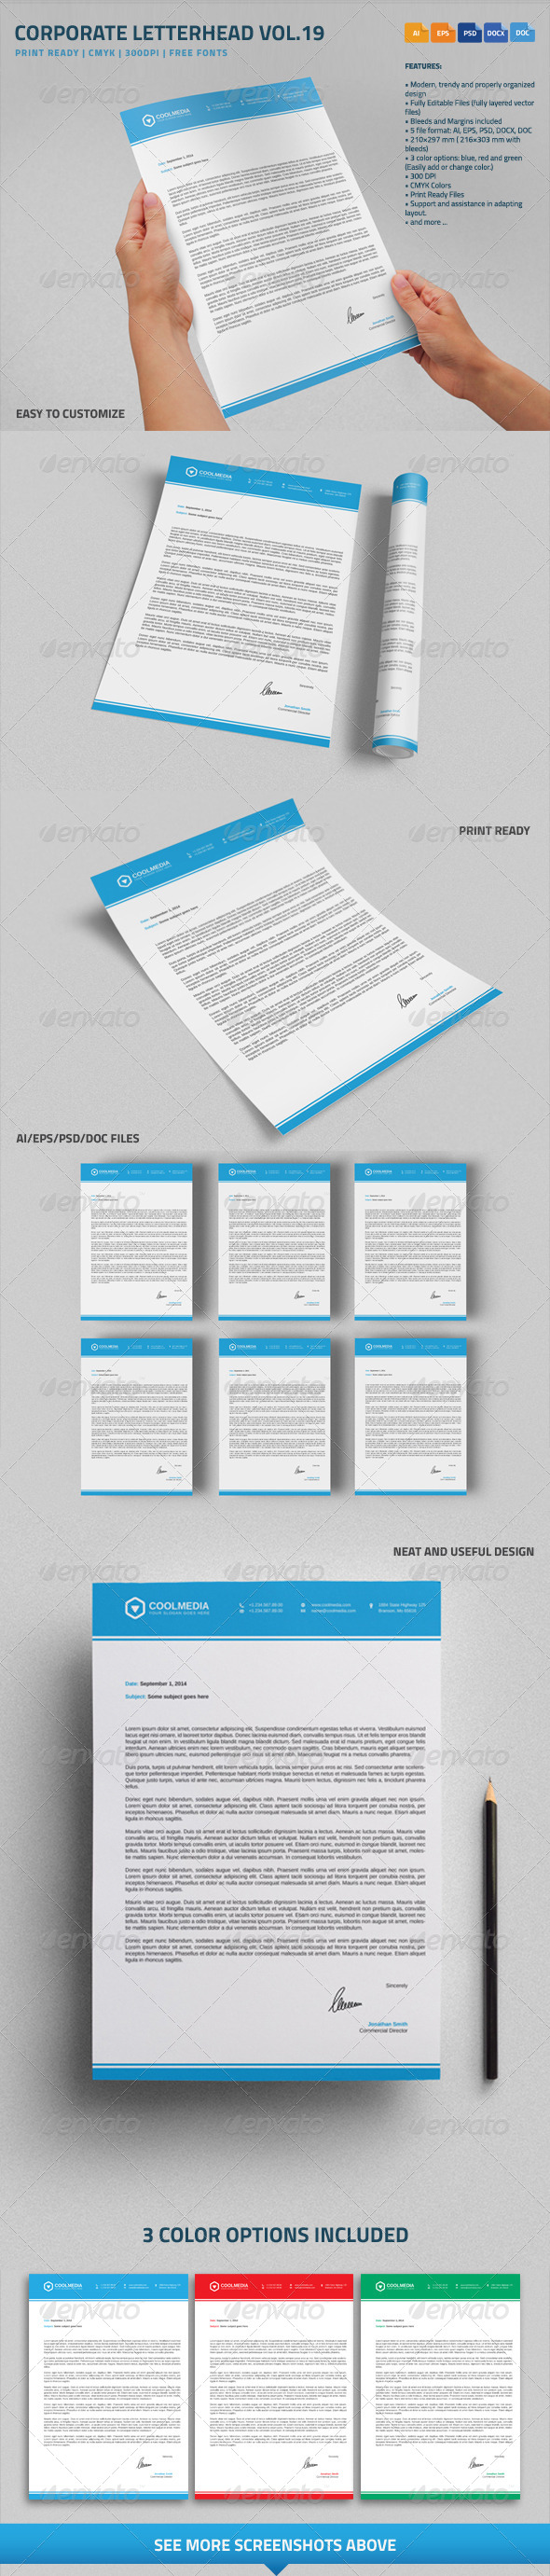 GraphicRiver Corporate Letterhead vol.19 with MS Word DOC DOCX 8738350